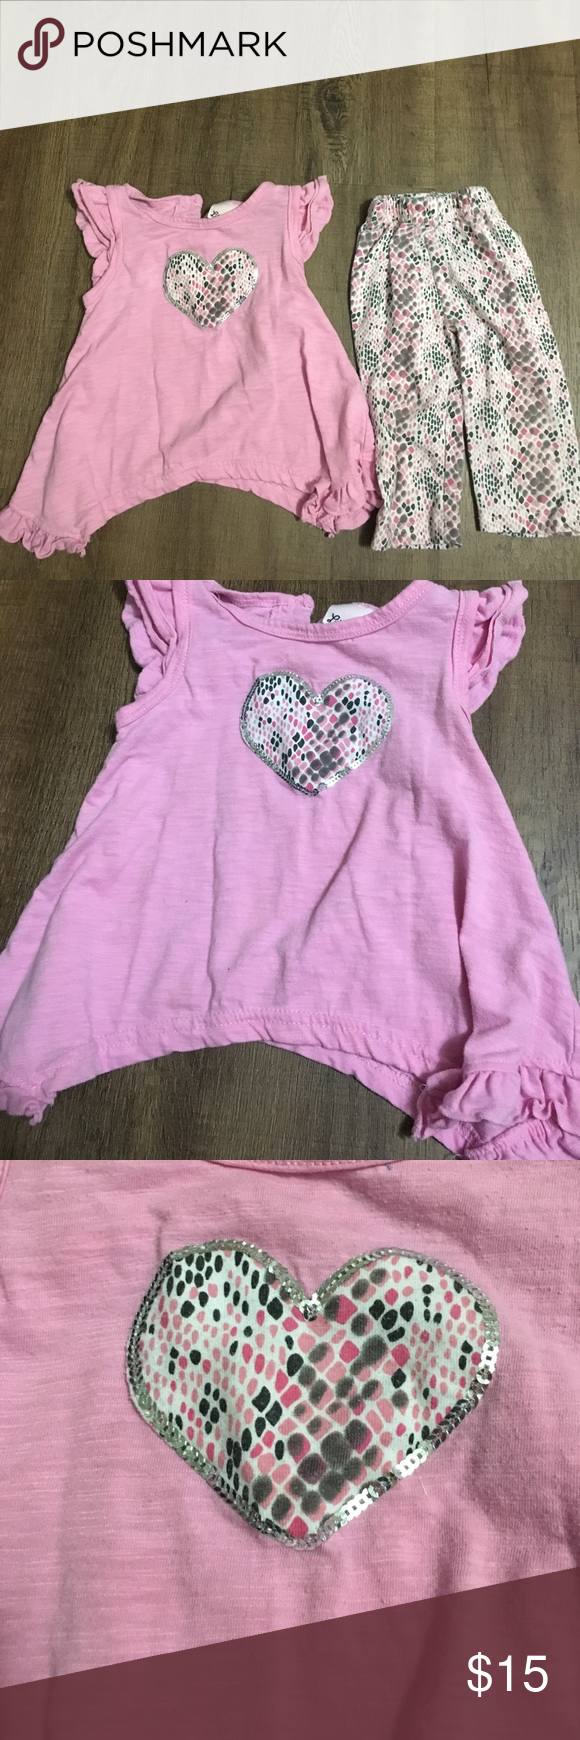 Pink snakeskin pattern outfit Pink short sleeve top with heart lined in silver sequins. White pants with pink black gray pattern. Looks like snakeskin. Very cute. 18 months. The shirt has frilly shoulders and its frilly on the bottom. Little Lass Matching Sets